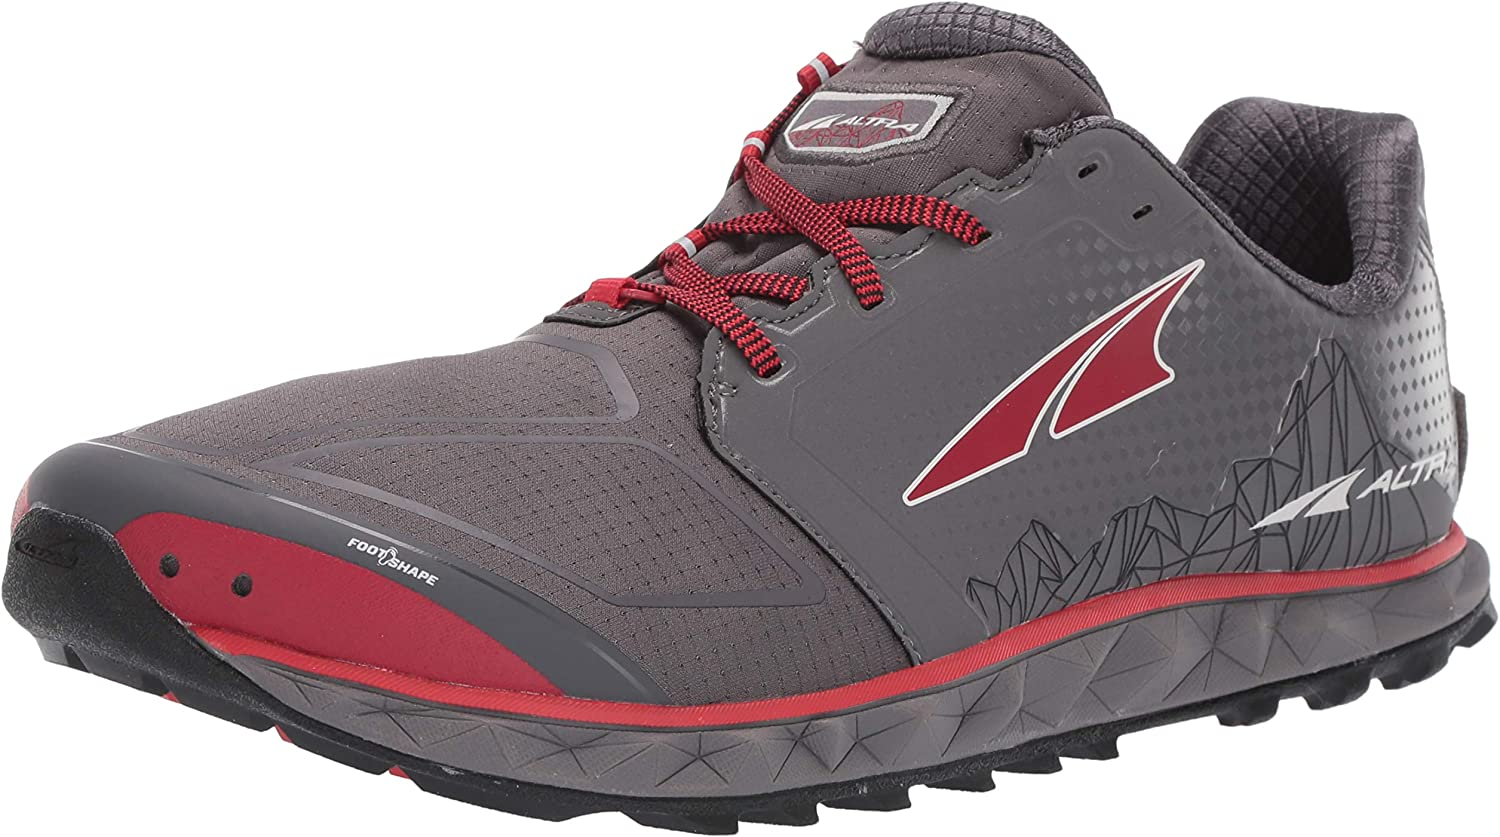 Altra Superior 4.0 Zapatillas de Trail Running